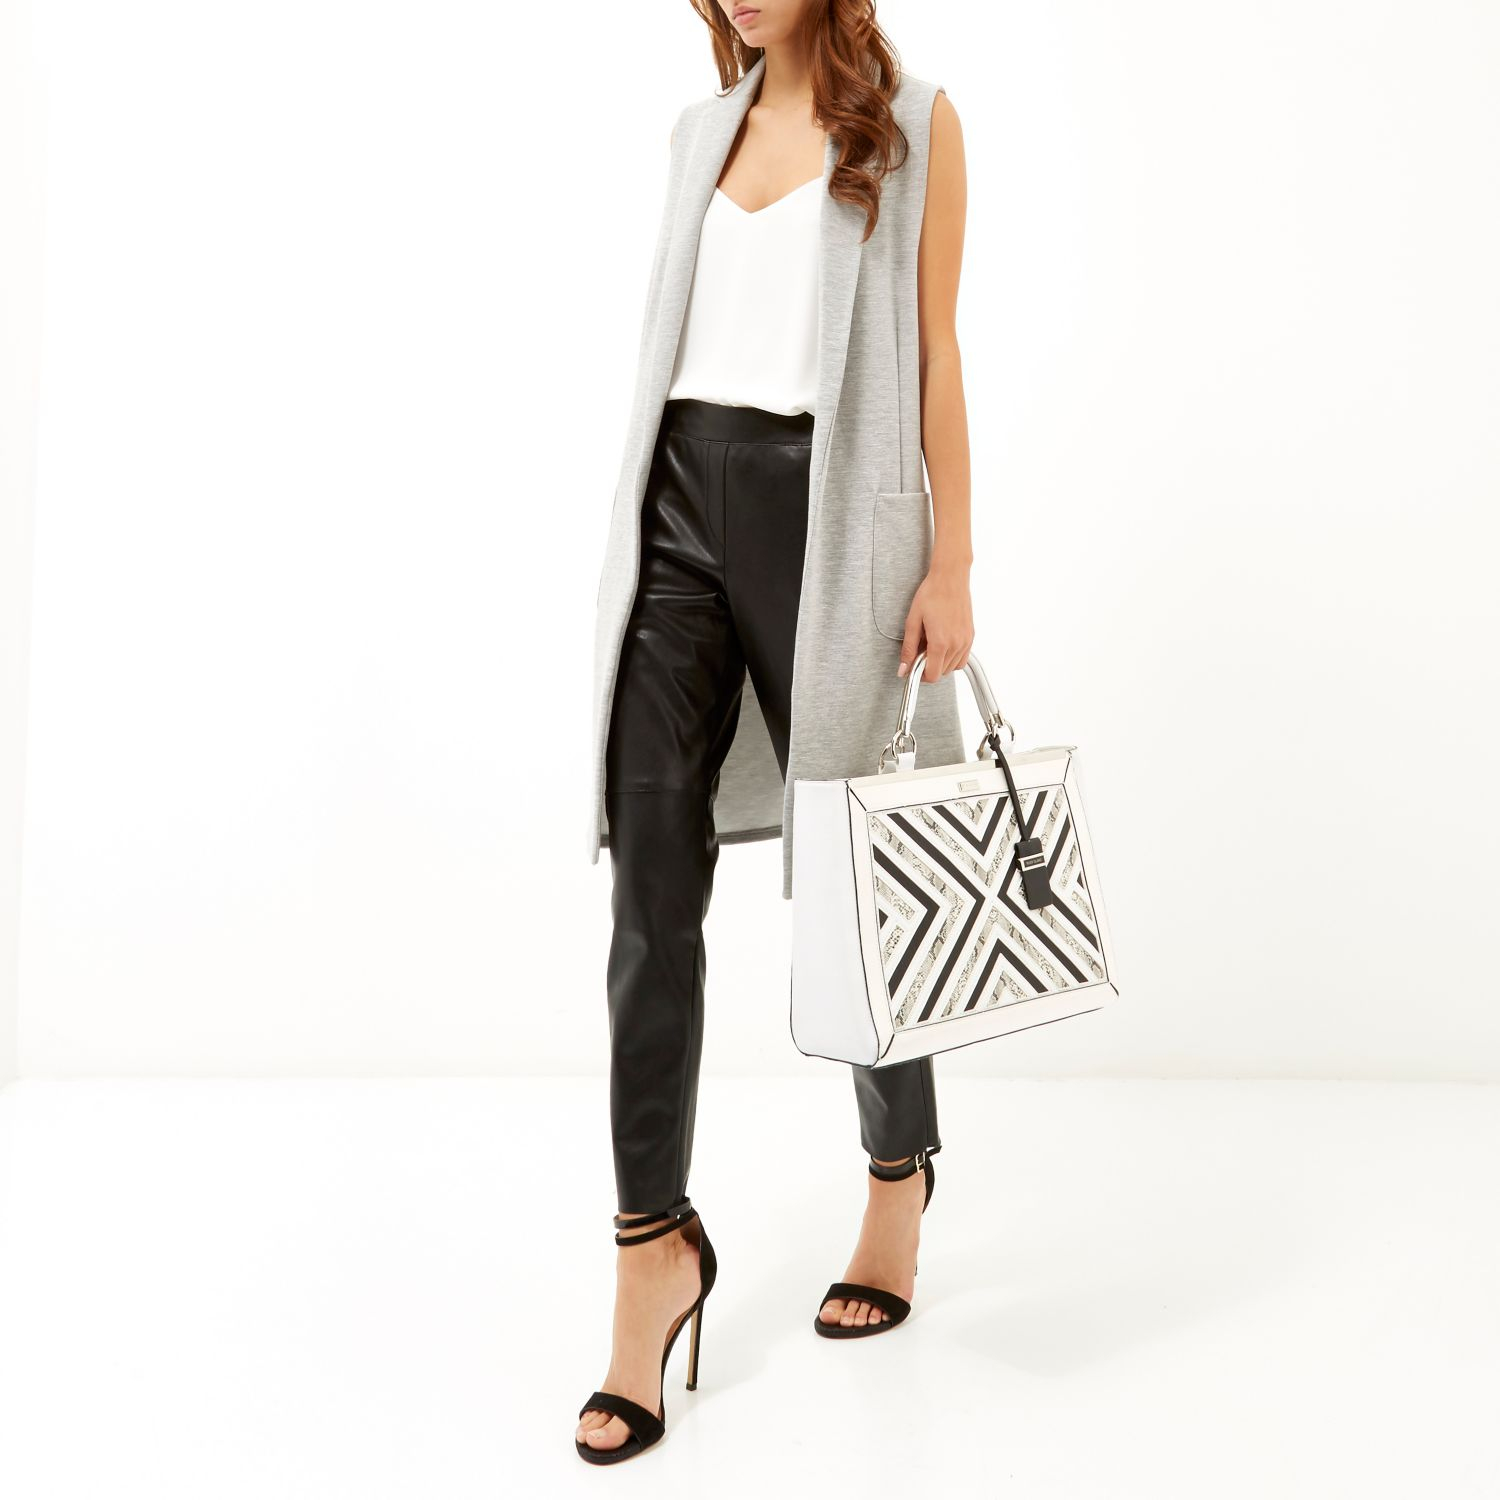 River Island White Smart Detail Tote Bag